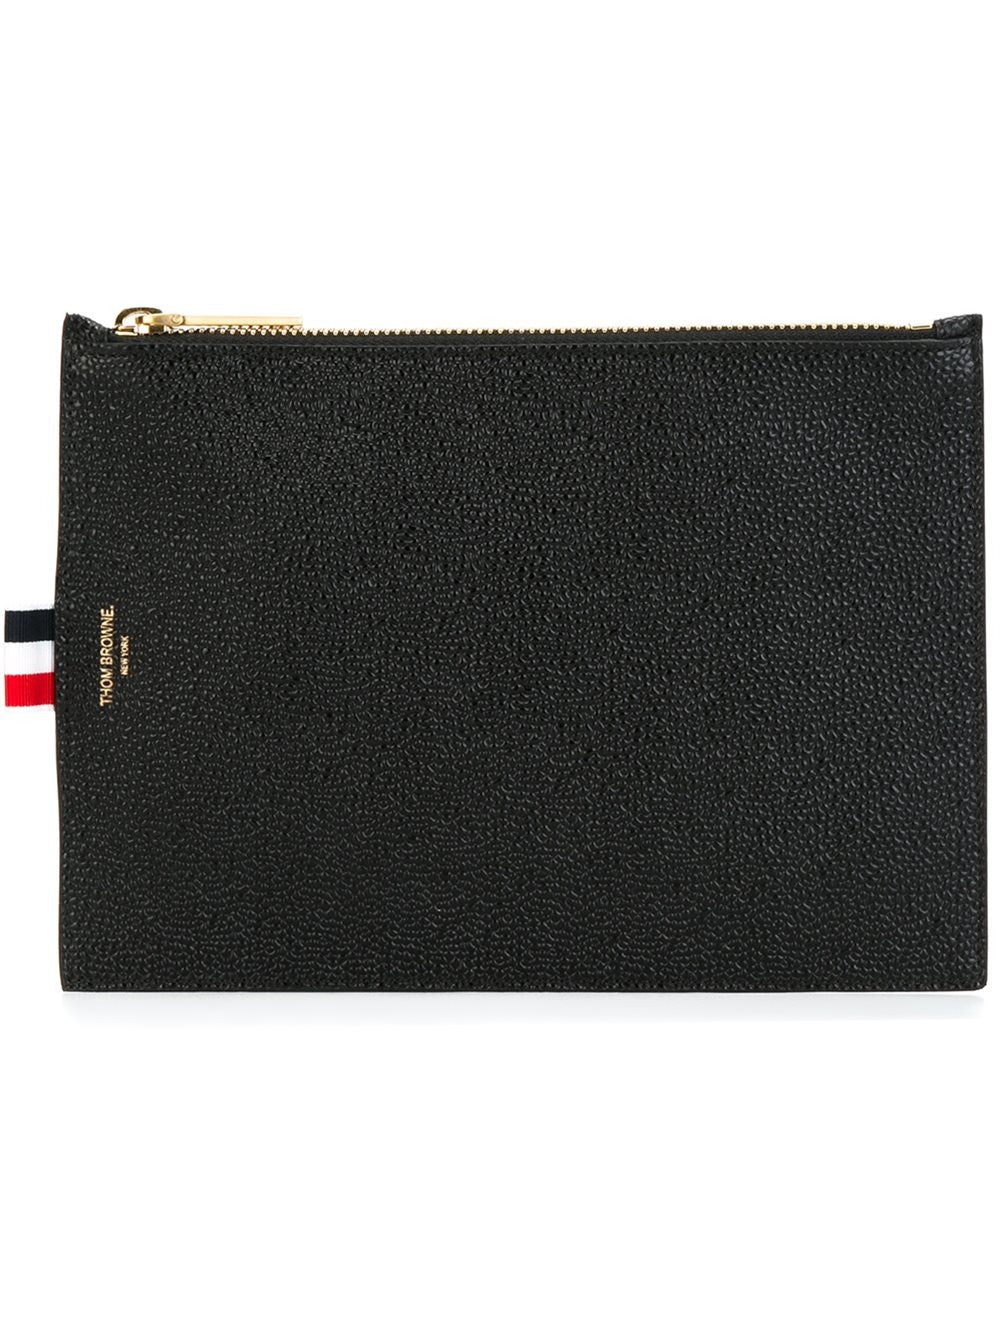 Pebble Grain Folio | MAW026L-00198 001